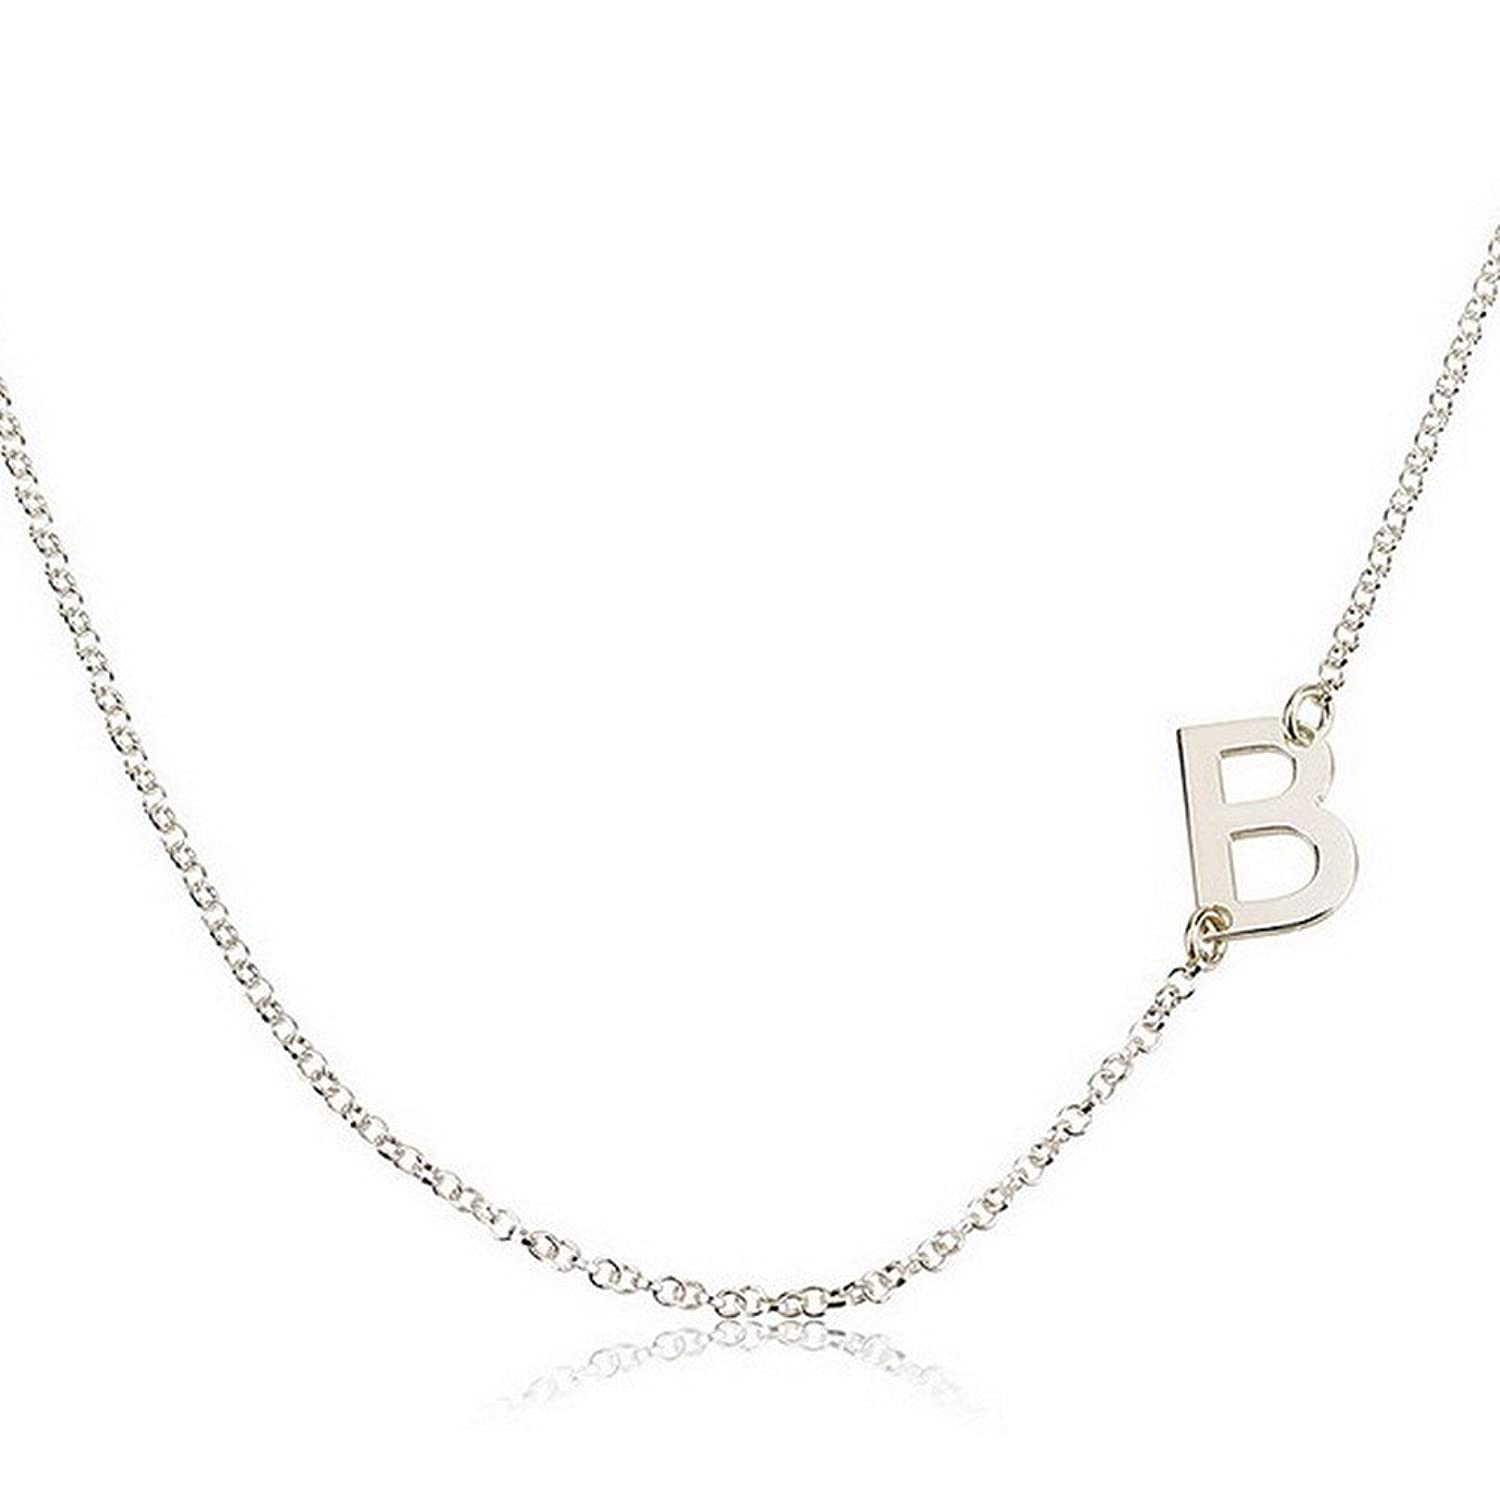 wedding women initial icftzwe fashion steel from letter jewelry silver necklace colour for gold elegant plated chain chains in alphabet stainless i band pendant necklaces item